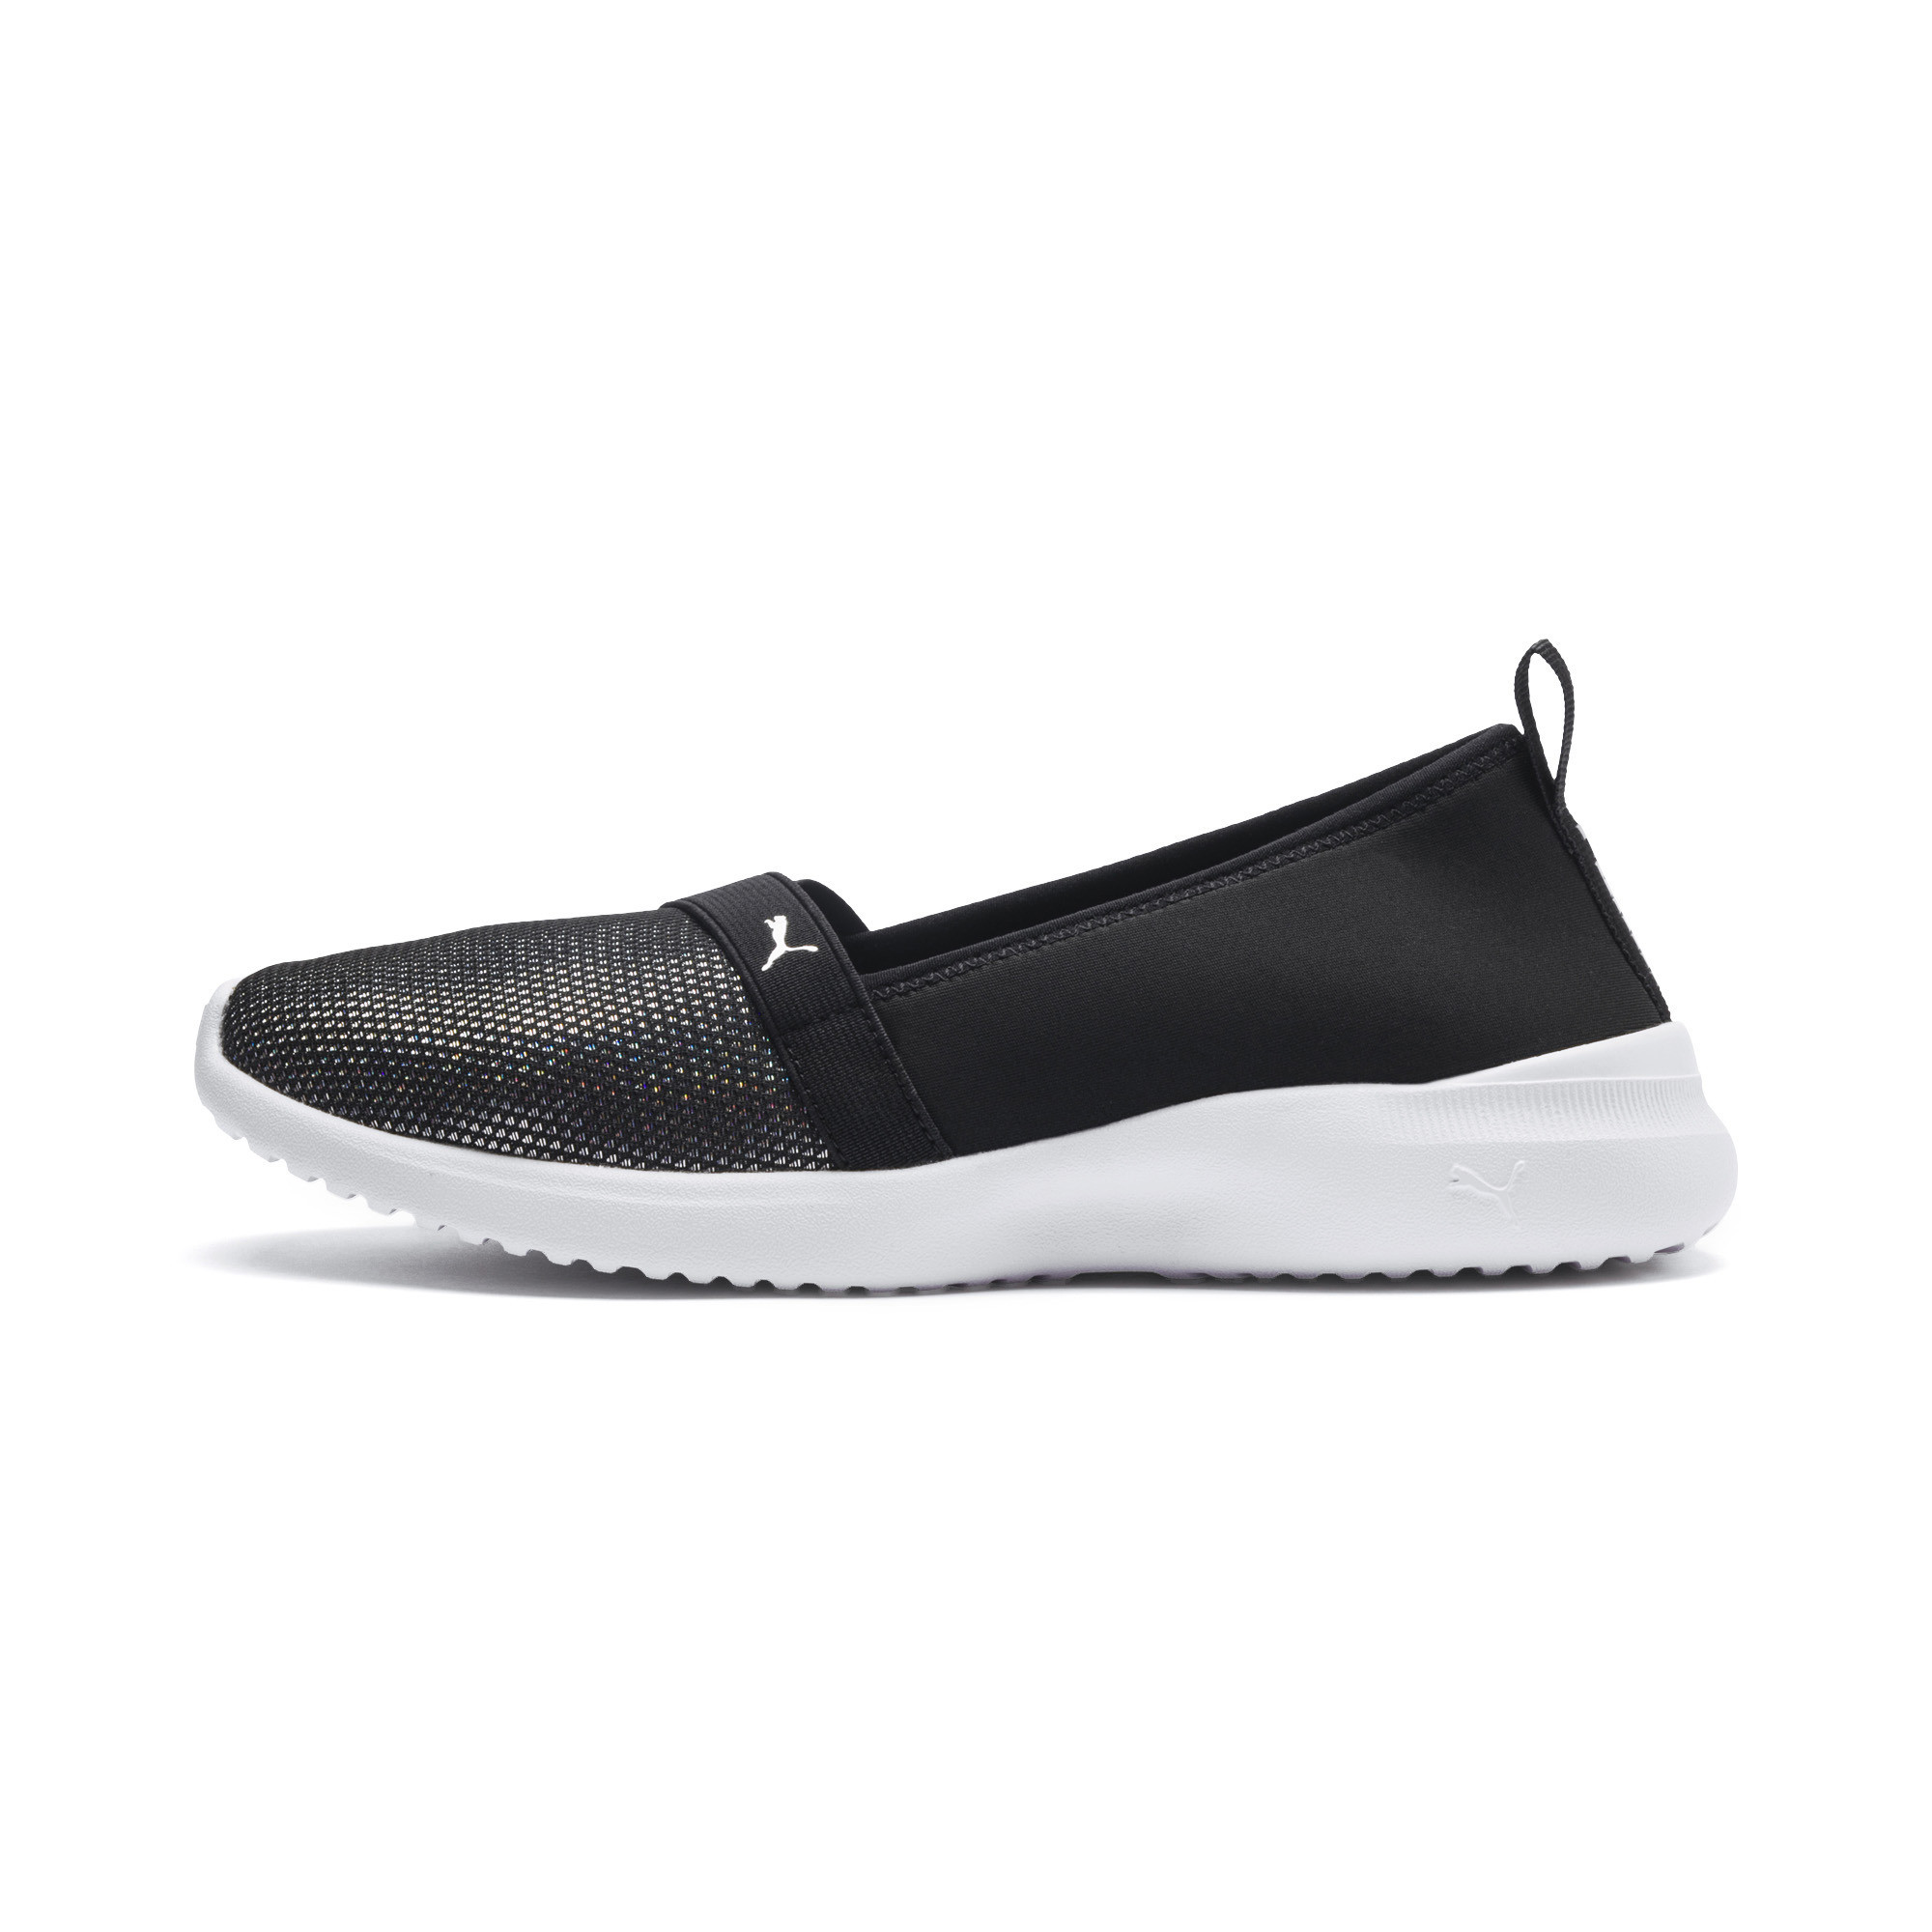 PUMA-Adelina-Sparkle-Women-s-Ballet-Shoes-Women-Shoe-Basics thumbnail 15